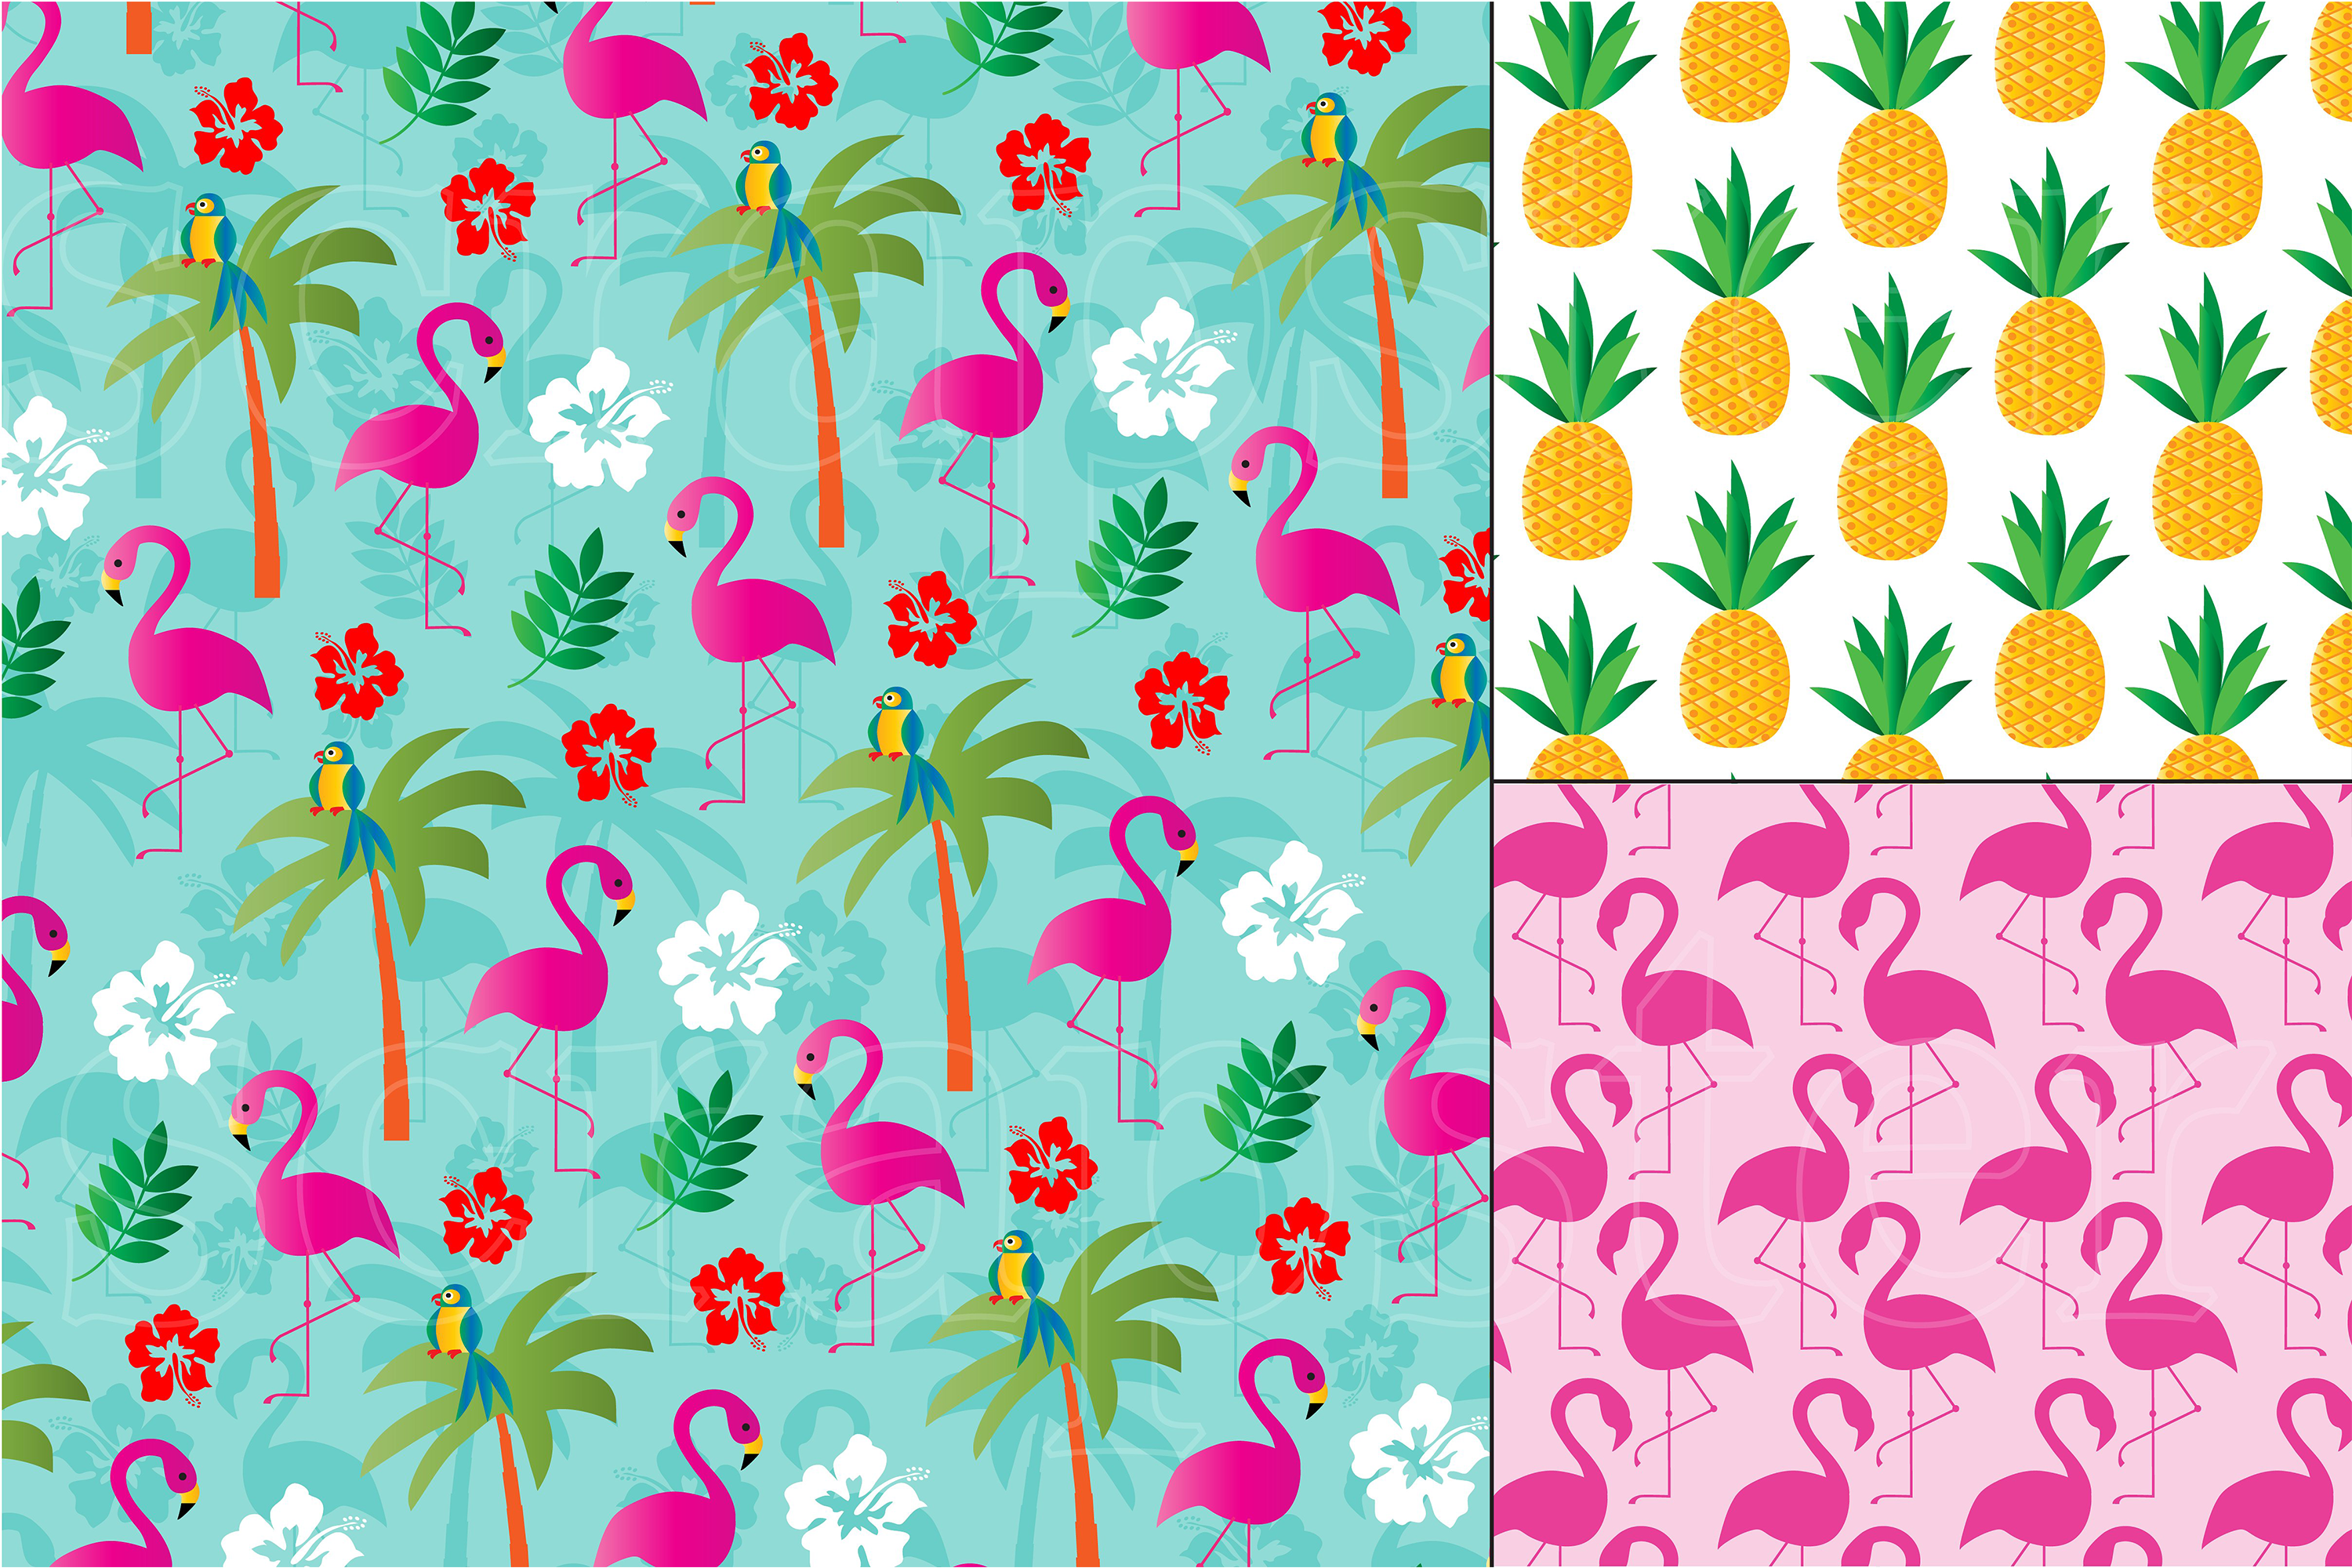 Flamingo & Pineapple Patterns example image 2